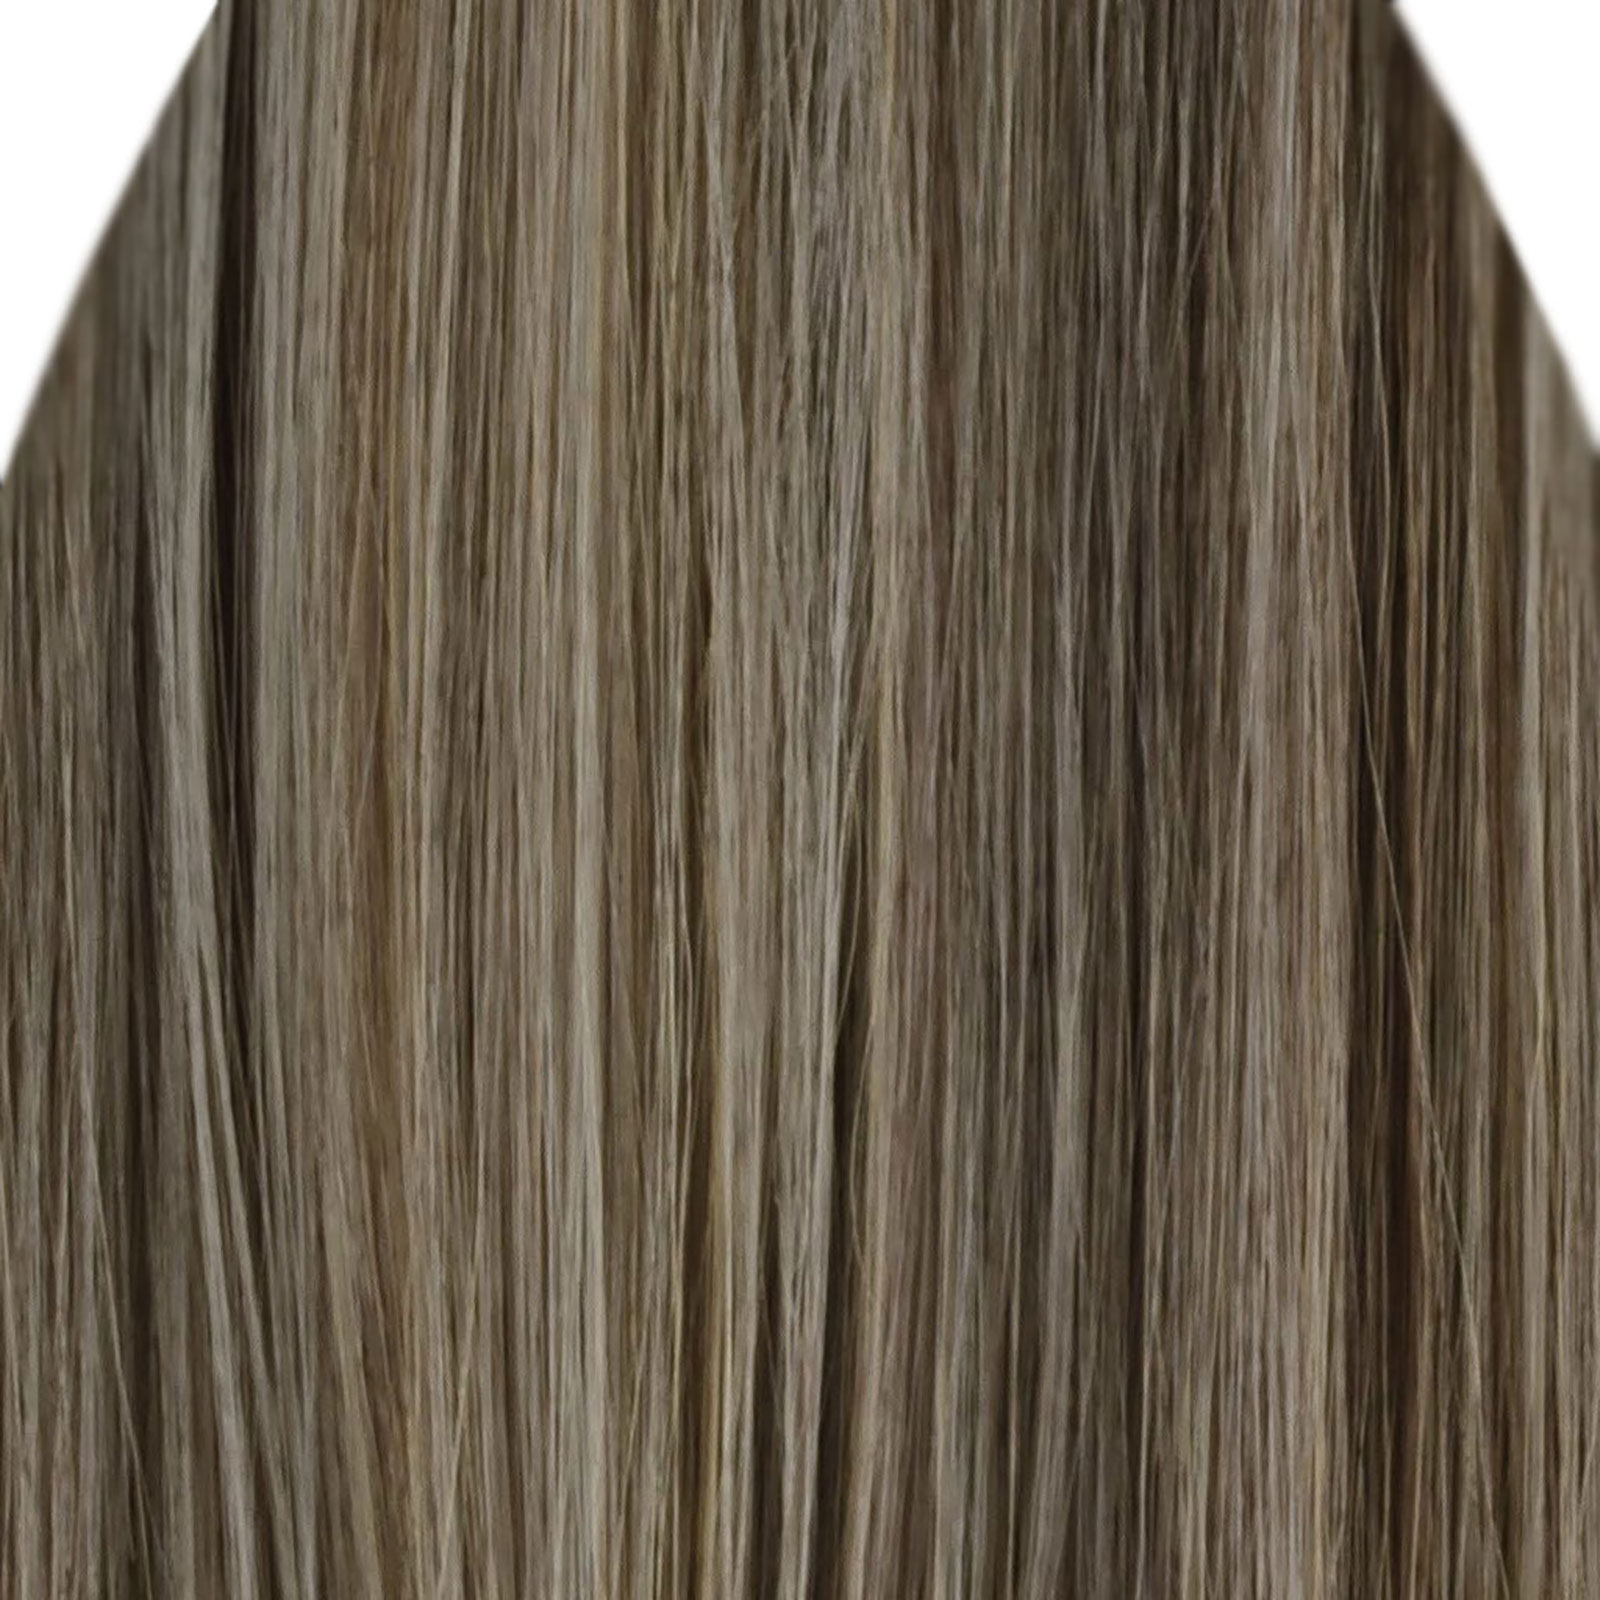 20 Highlights Clip In Hair Extensions Straight 8pcs 50g Choose